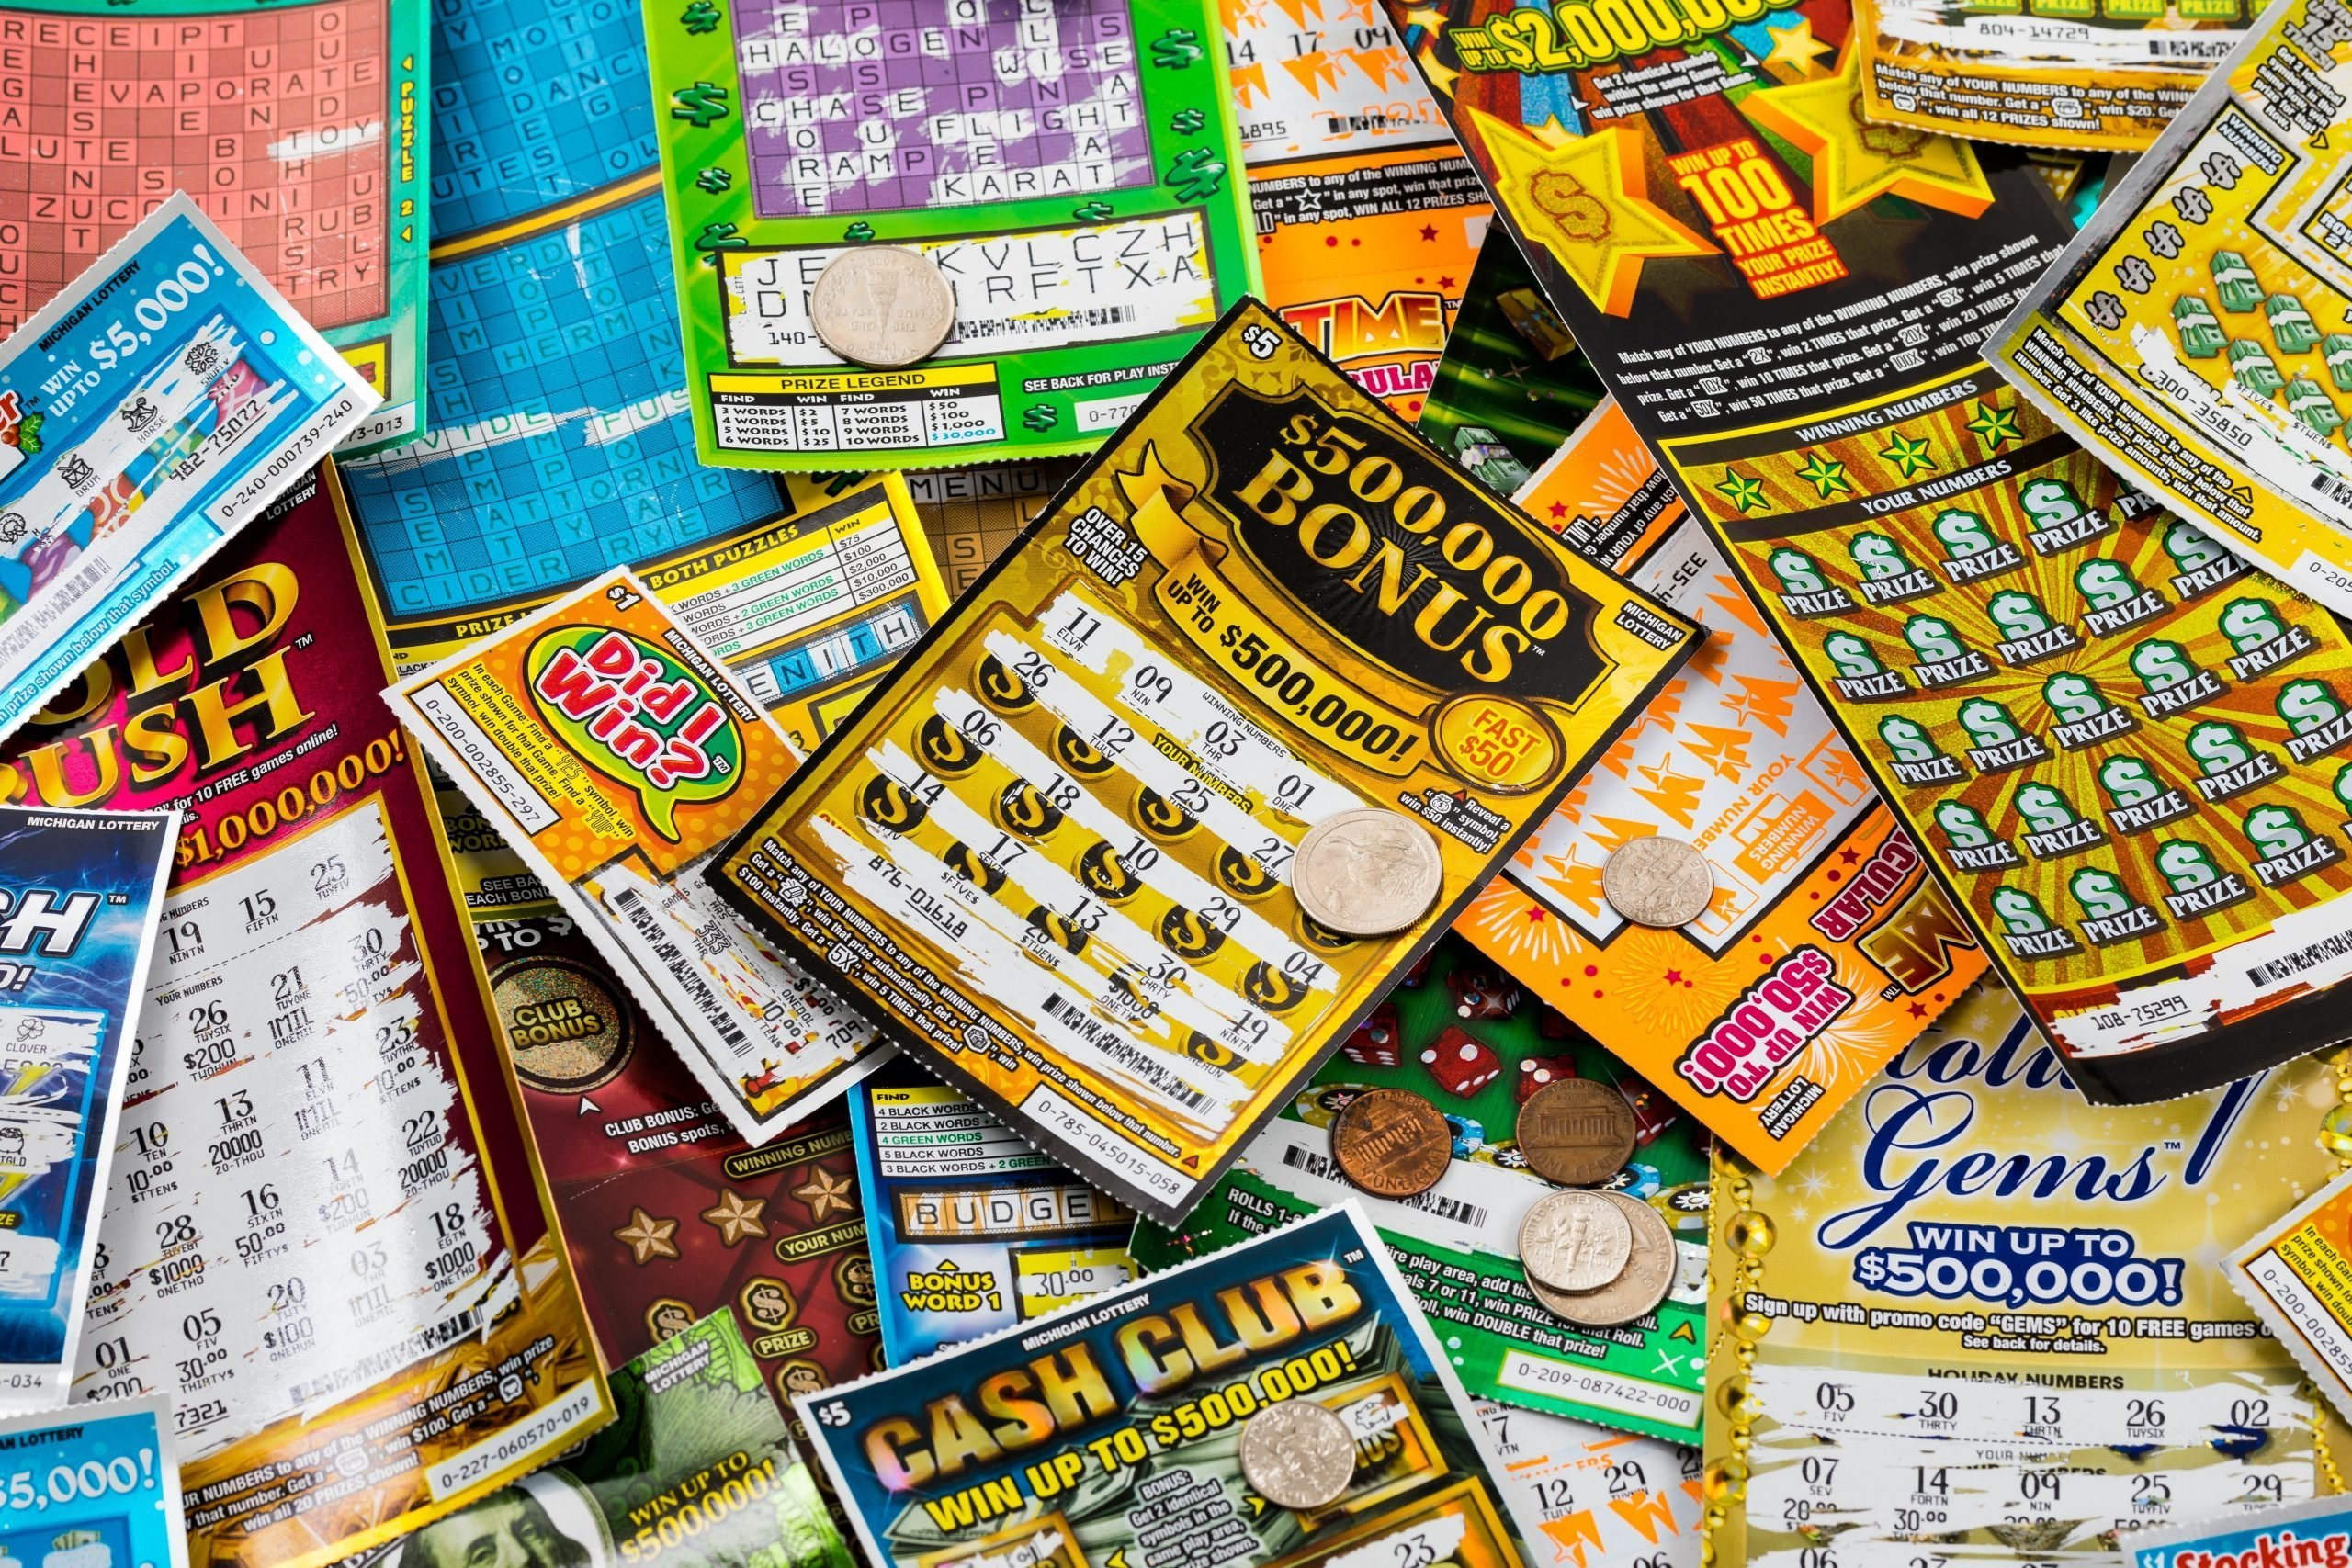 How to Win the Lottery: Most Common Lottery Numbers | Reader's Digest